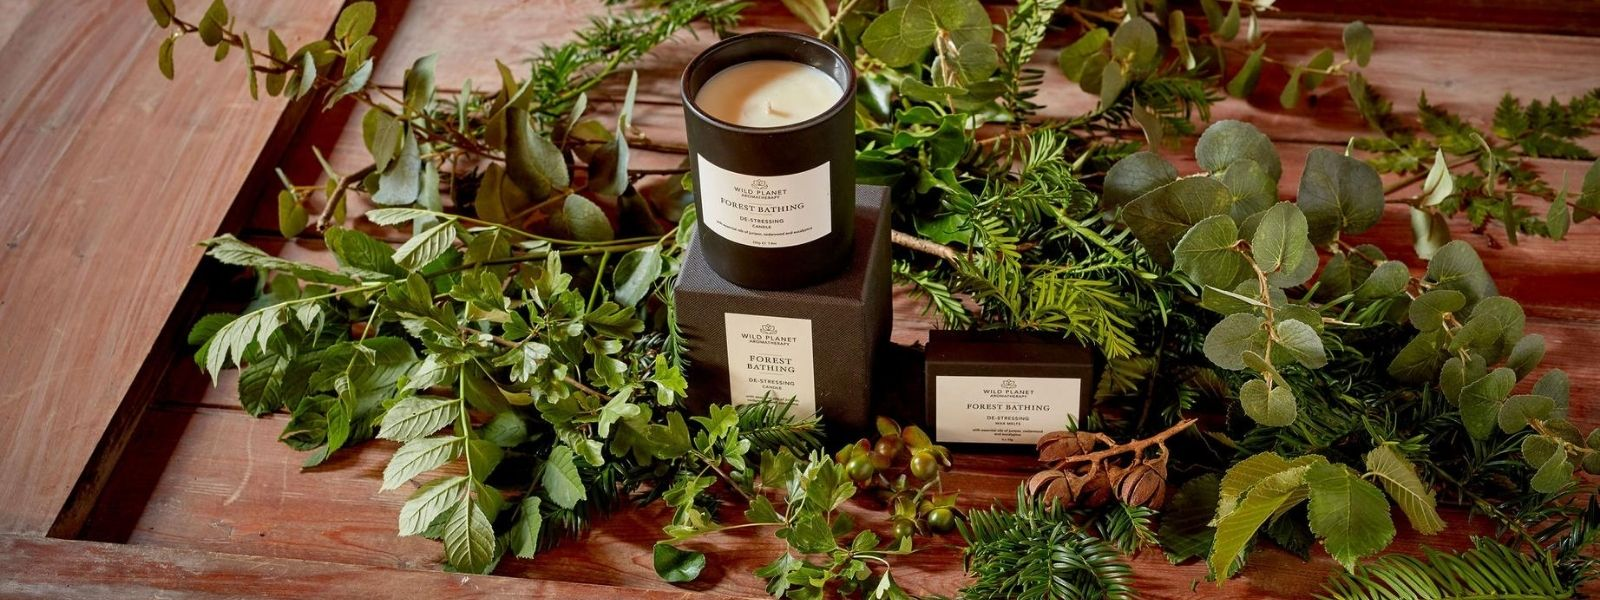 Forest Bathing Home Fragrance Collection with candle on box next to box of wax melts on wooden table with green foliage by Wild Planet Aromatherapy